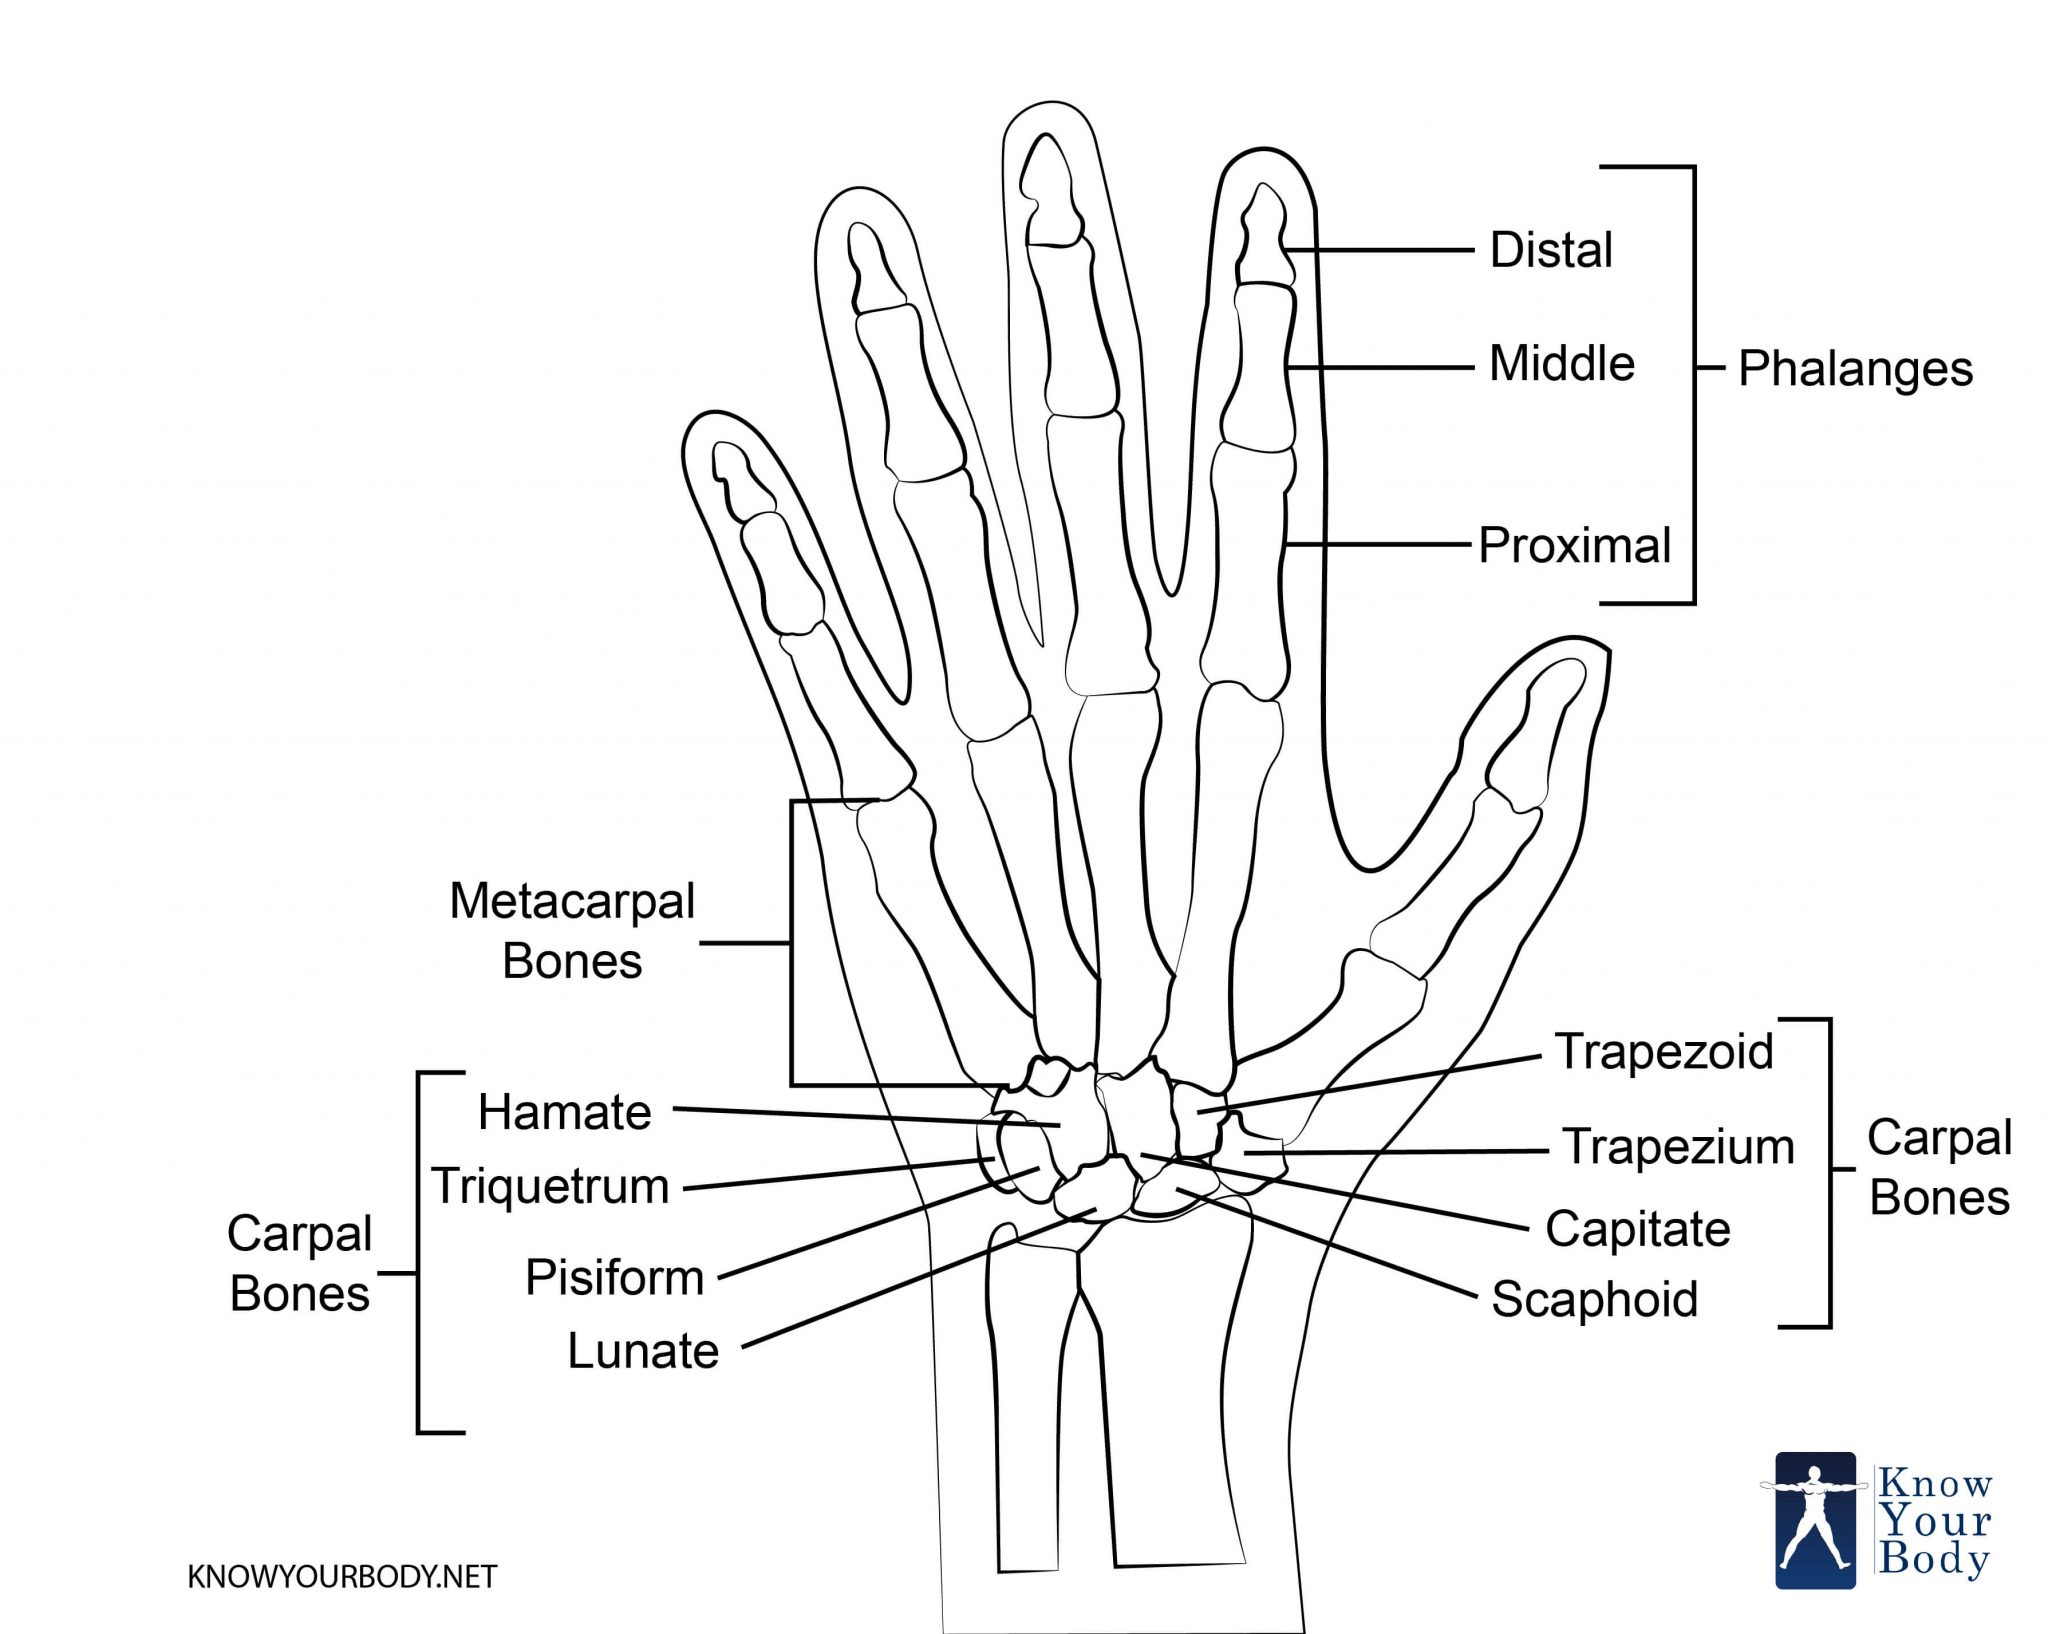 Hand Bones Anatomy Structure And Diagram